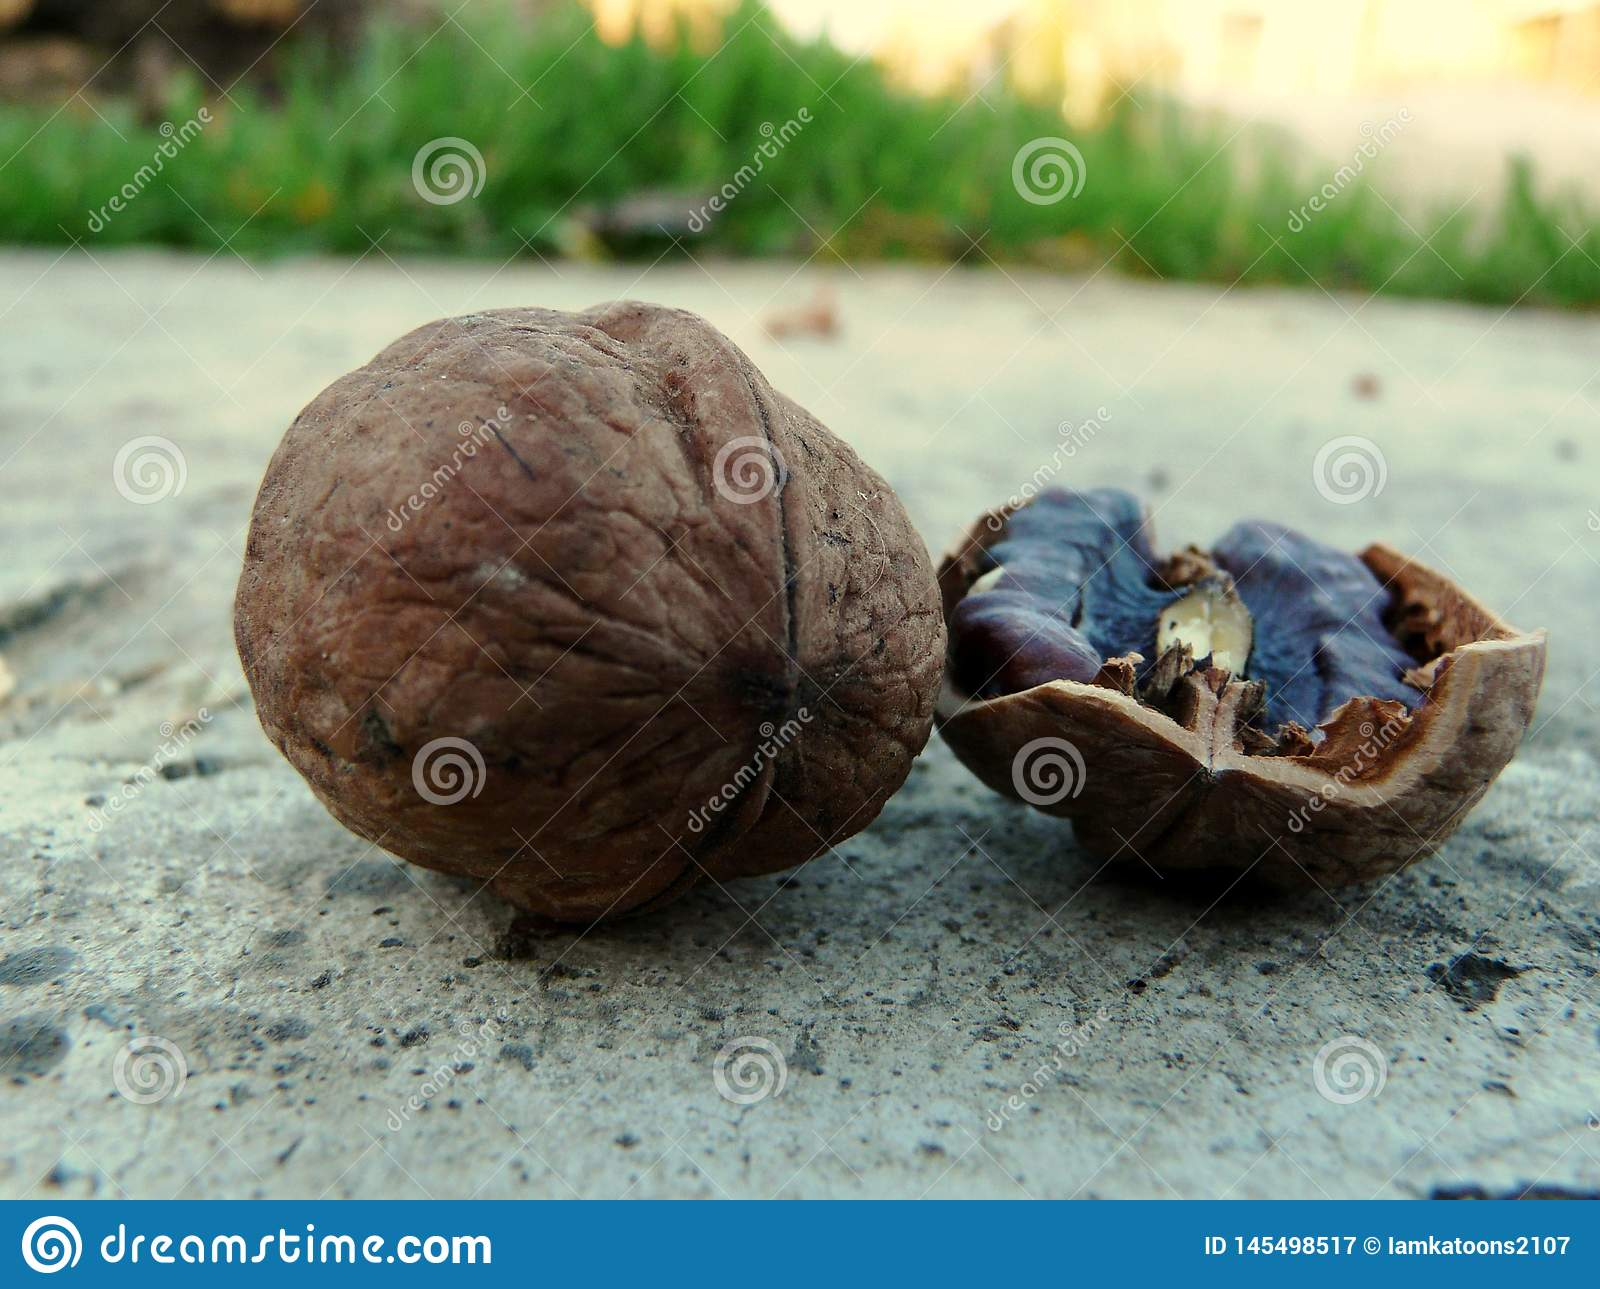 Walnut for the best life